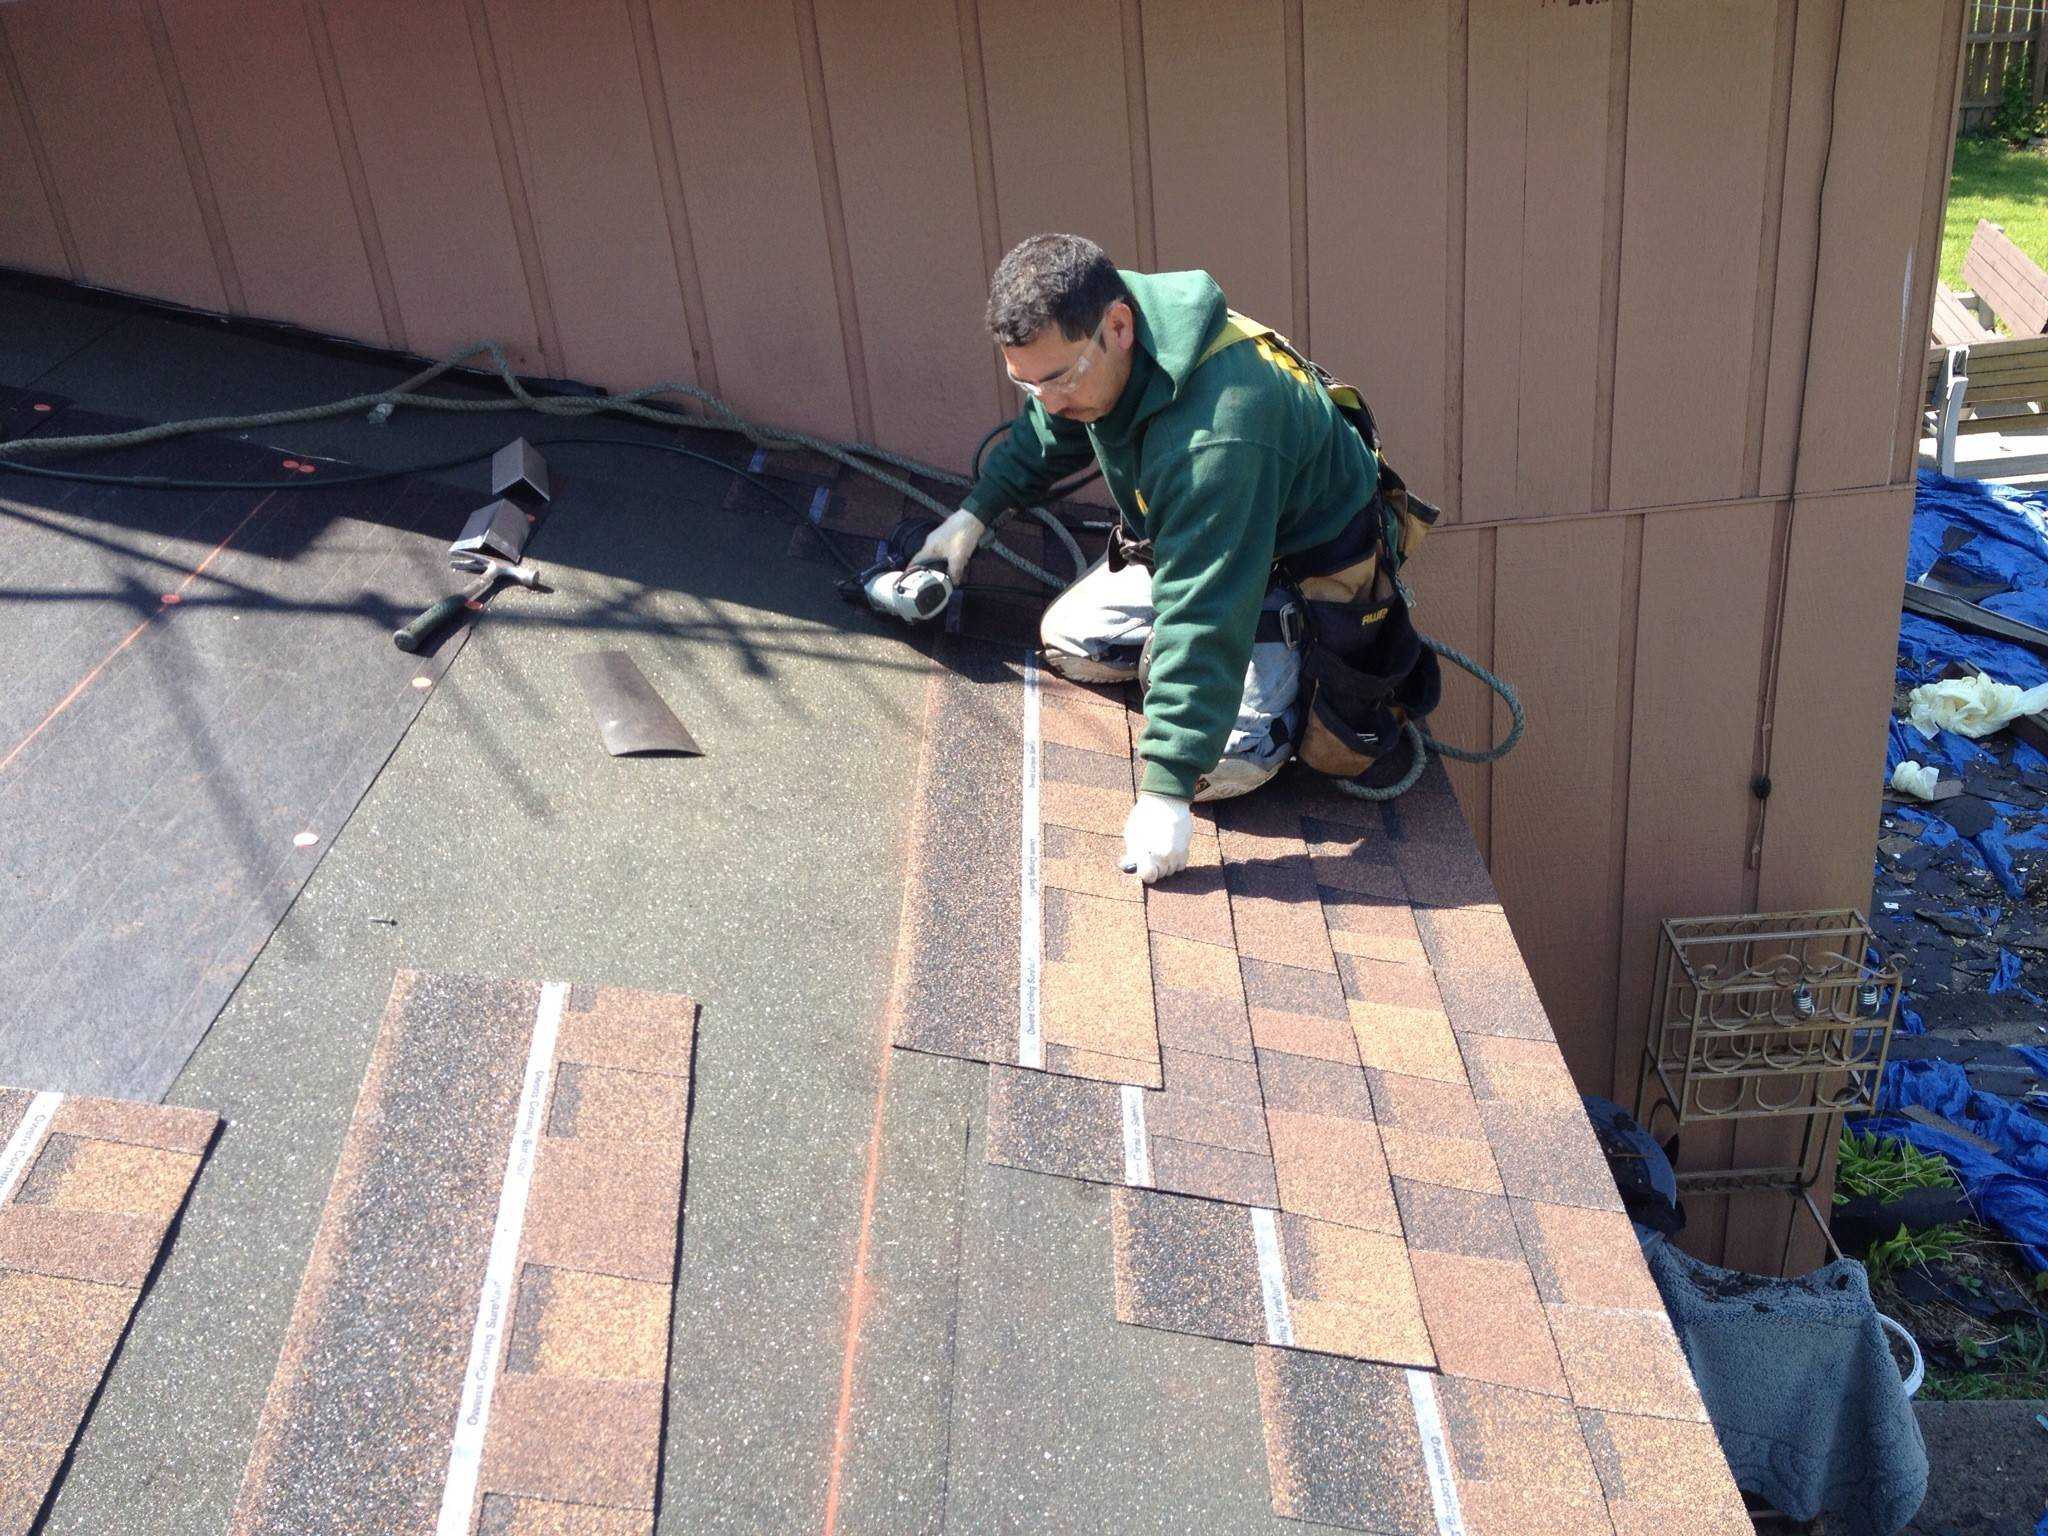 M & M Home Remodeling Services began as a roofing company and still provides this vital service.